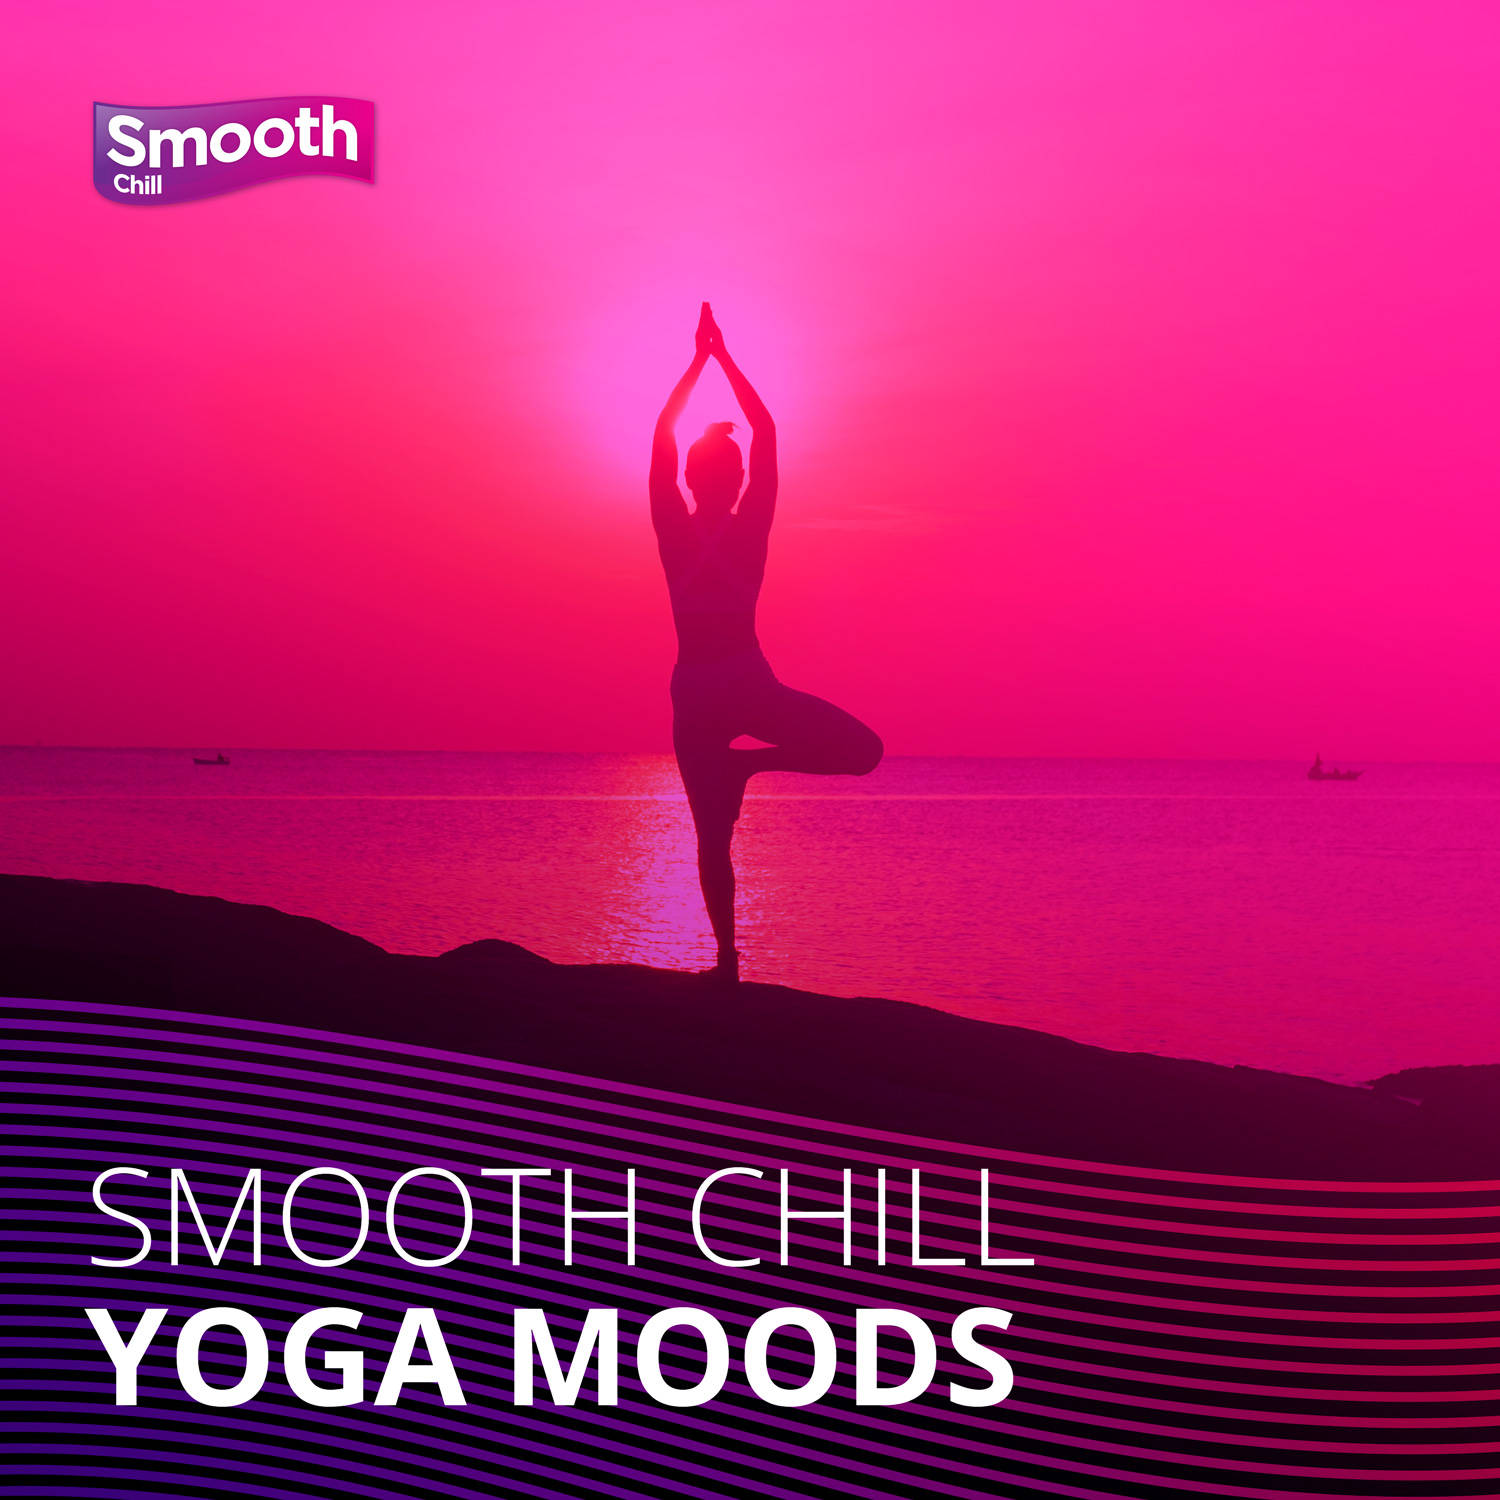 Smooth Chill Yoga Moods image